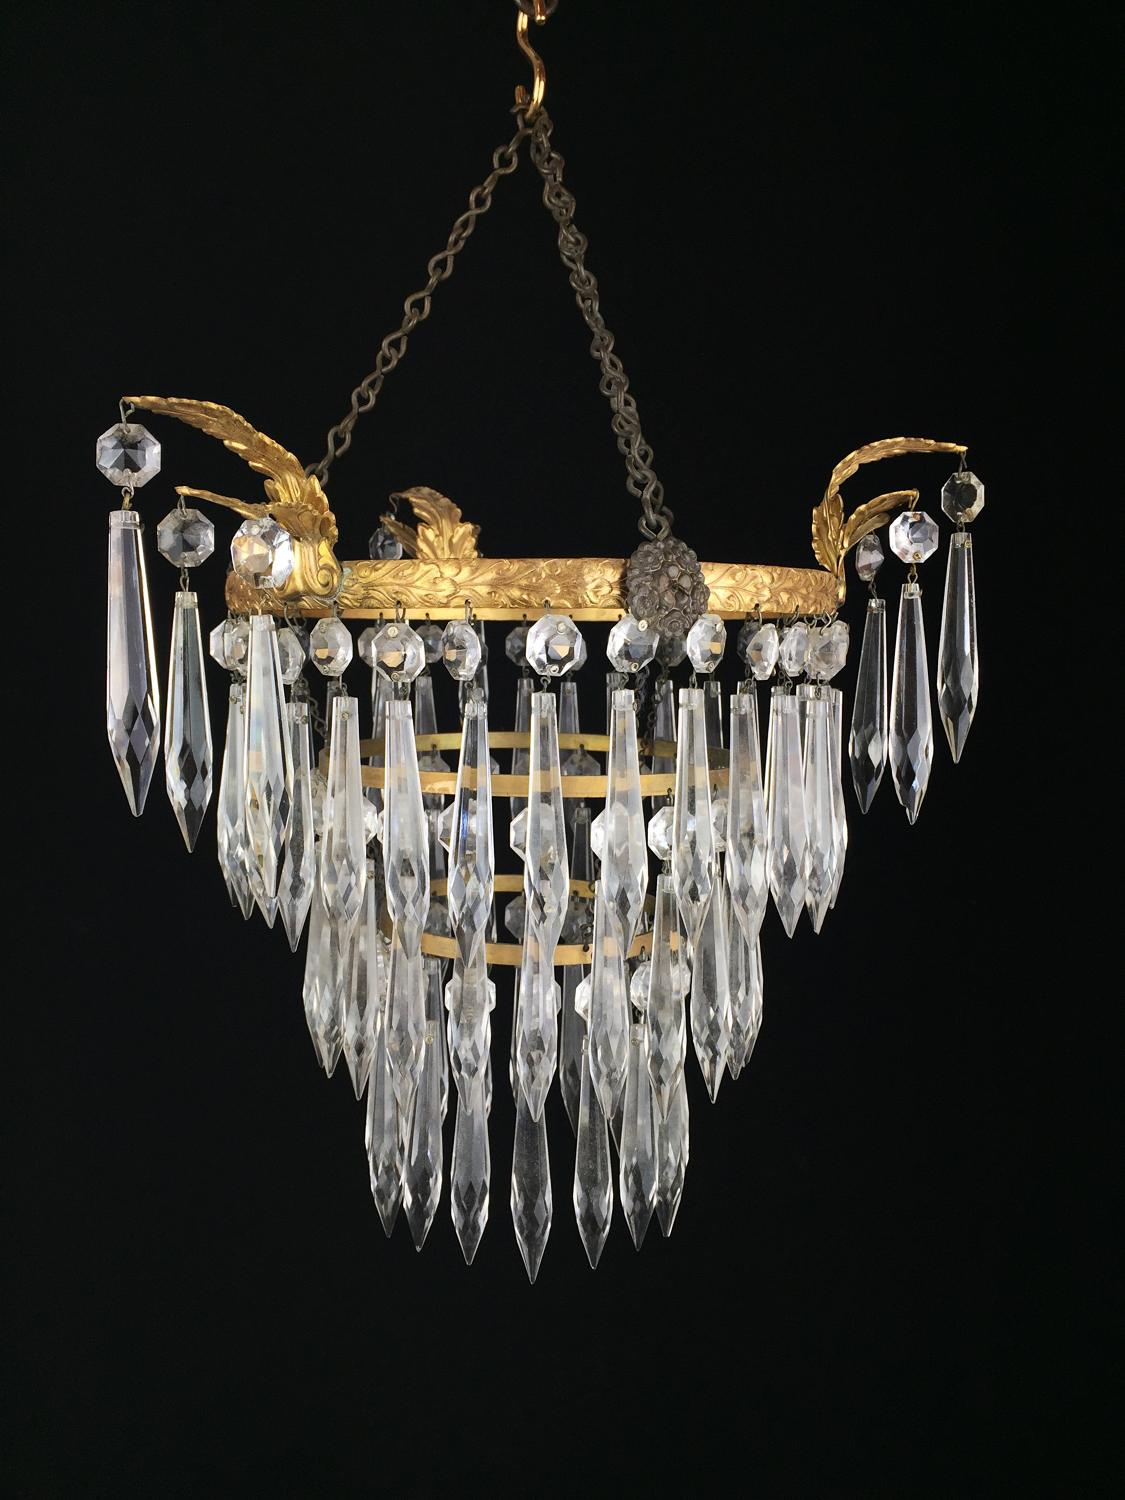 A charming ceiling light